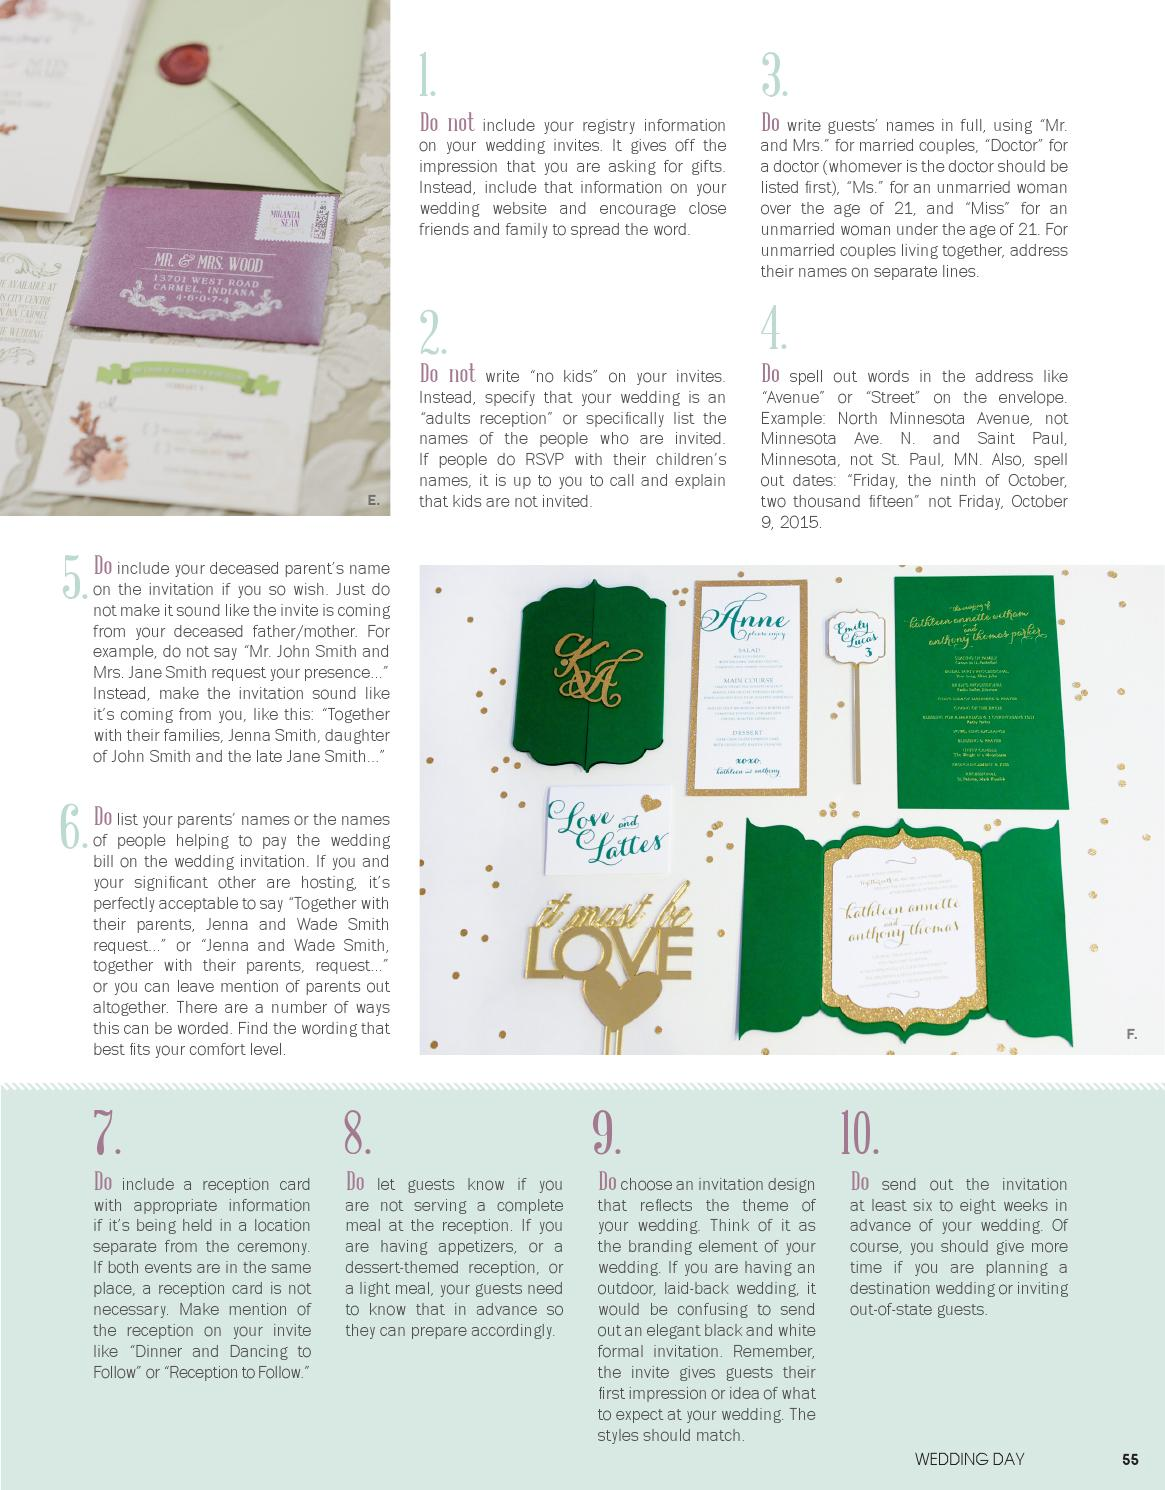 Weddingday Magazine Northern Indiana Issue 1 2016 By Life Events